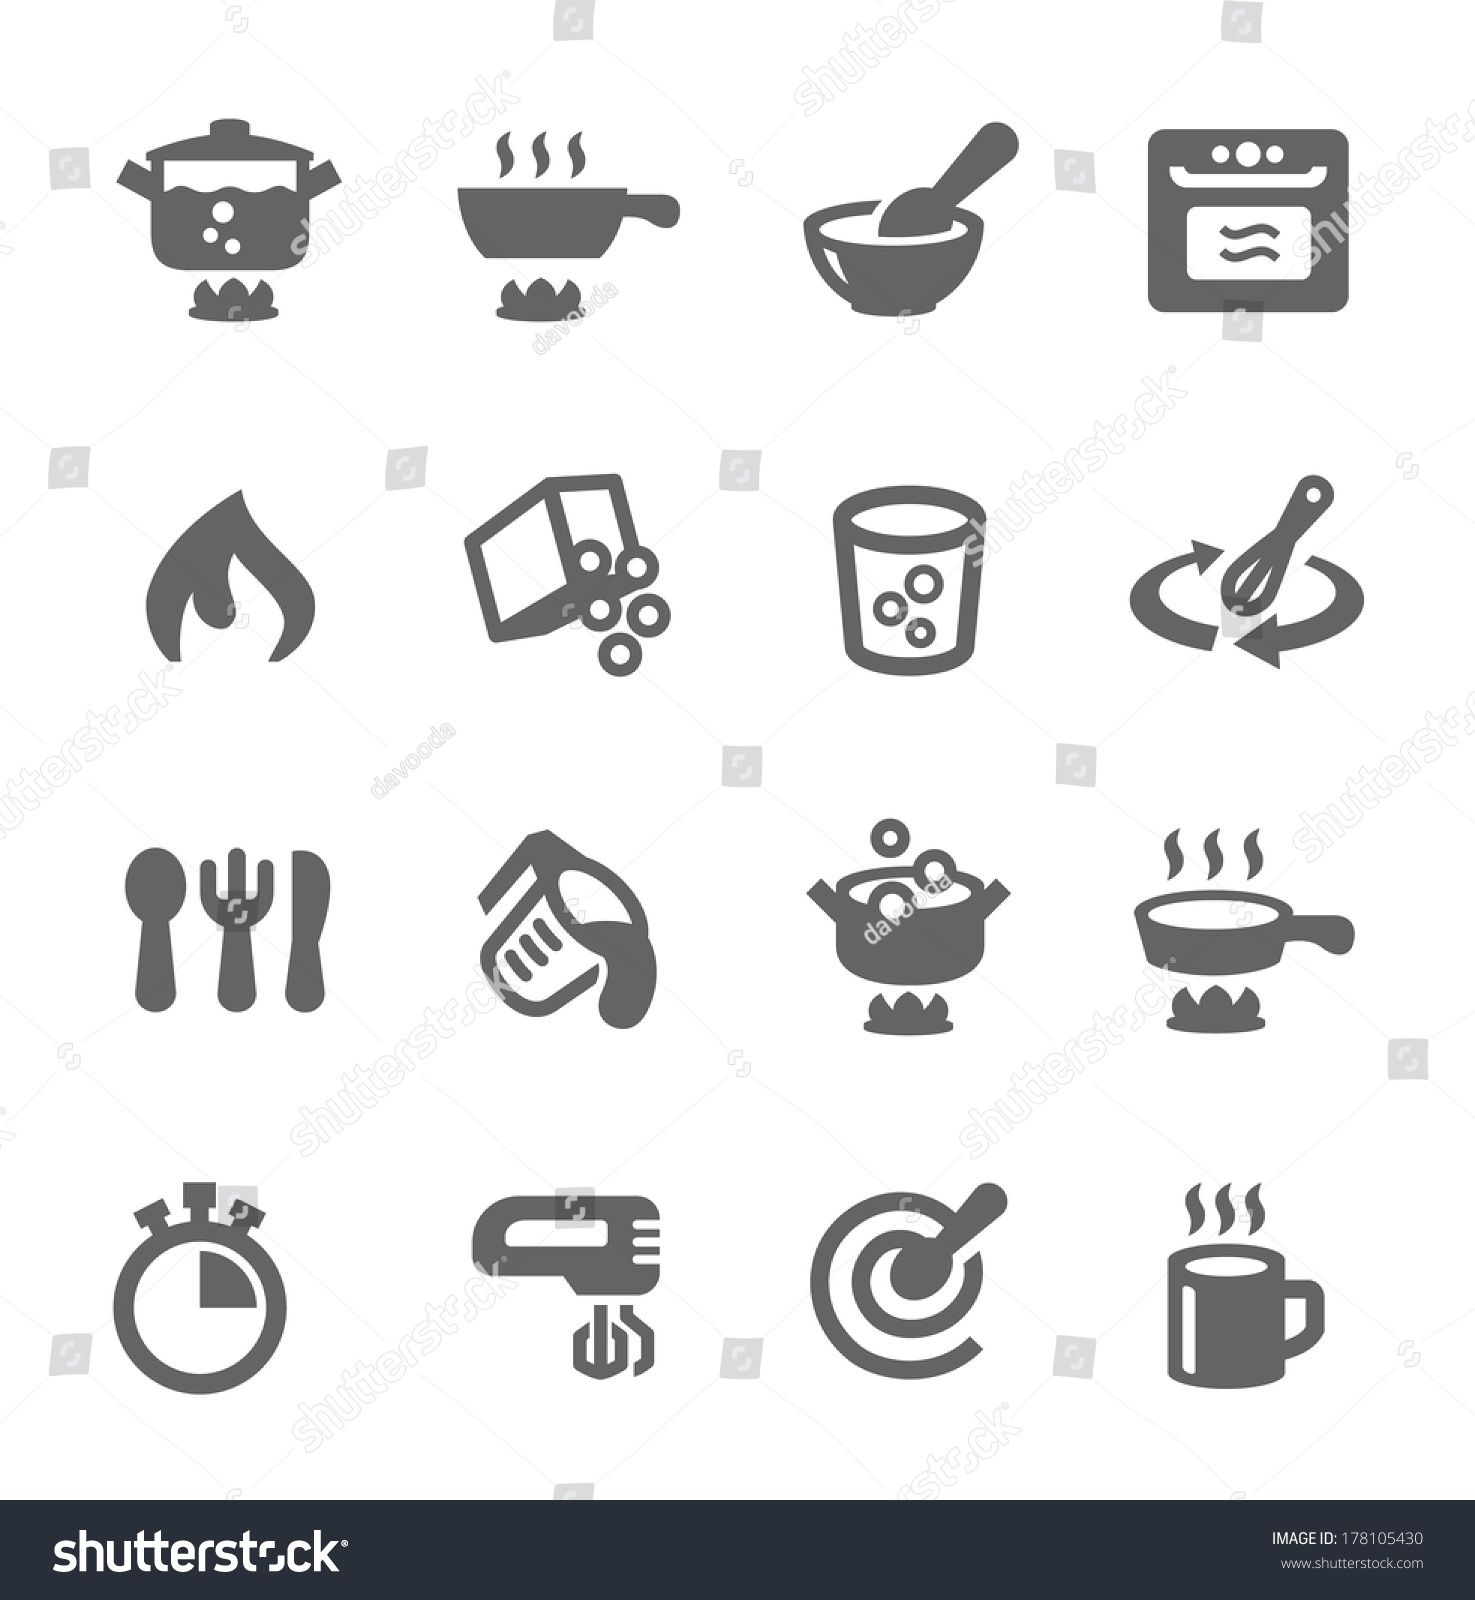 Simple set of cooking related vector icons for your design #Ad , #Affiliate, #cooking#set#Simple#related